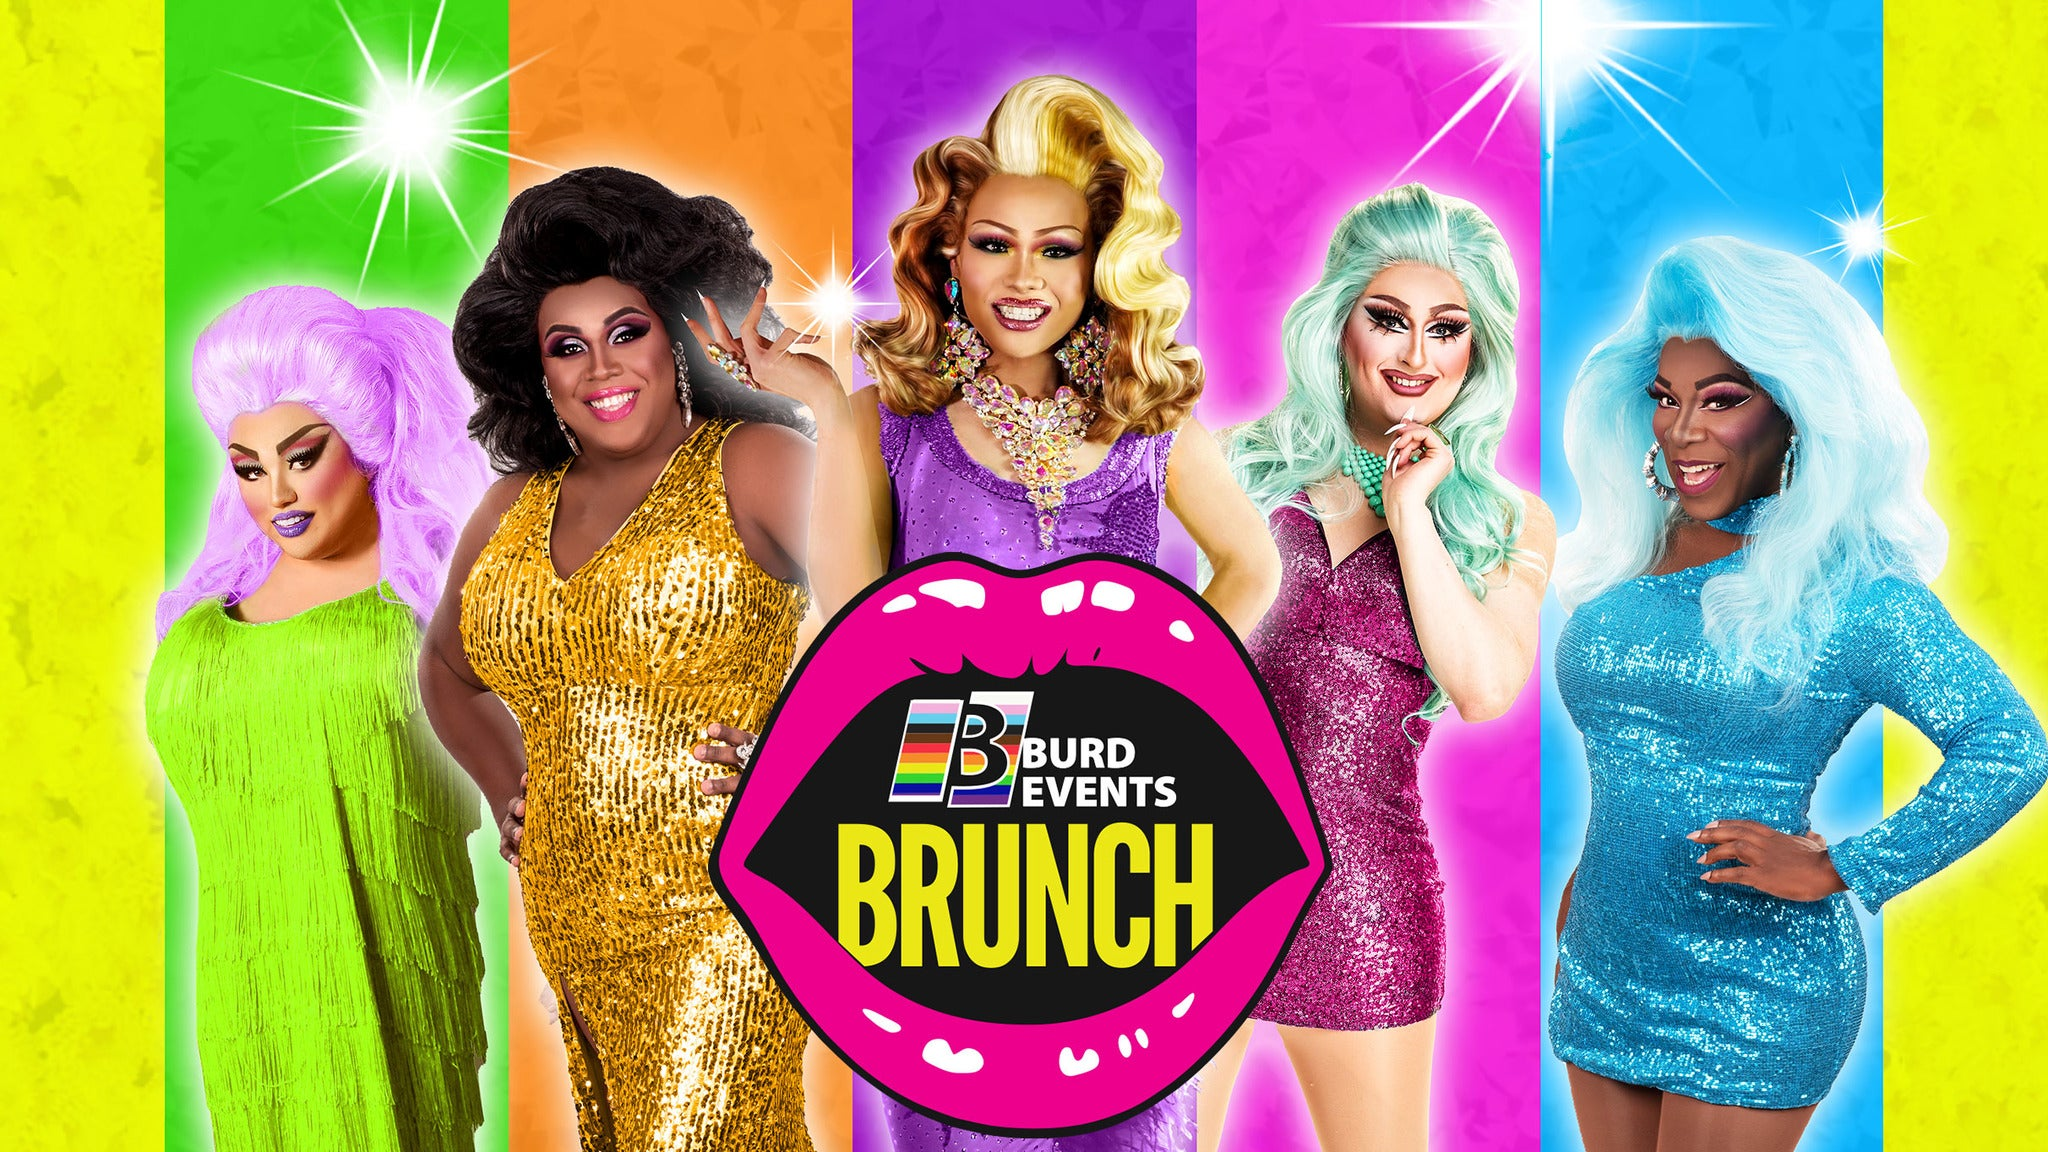 American Horror Story Brunch by Burd Events